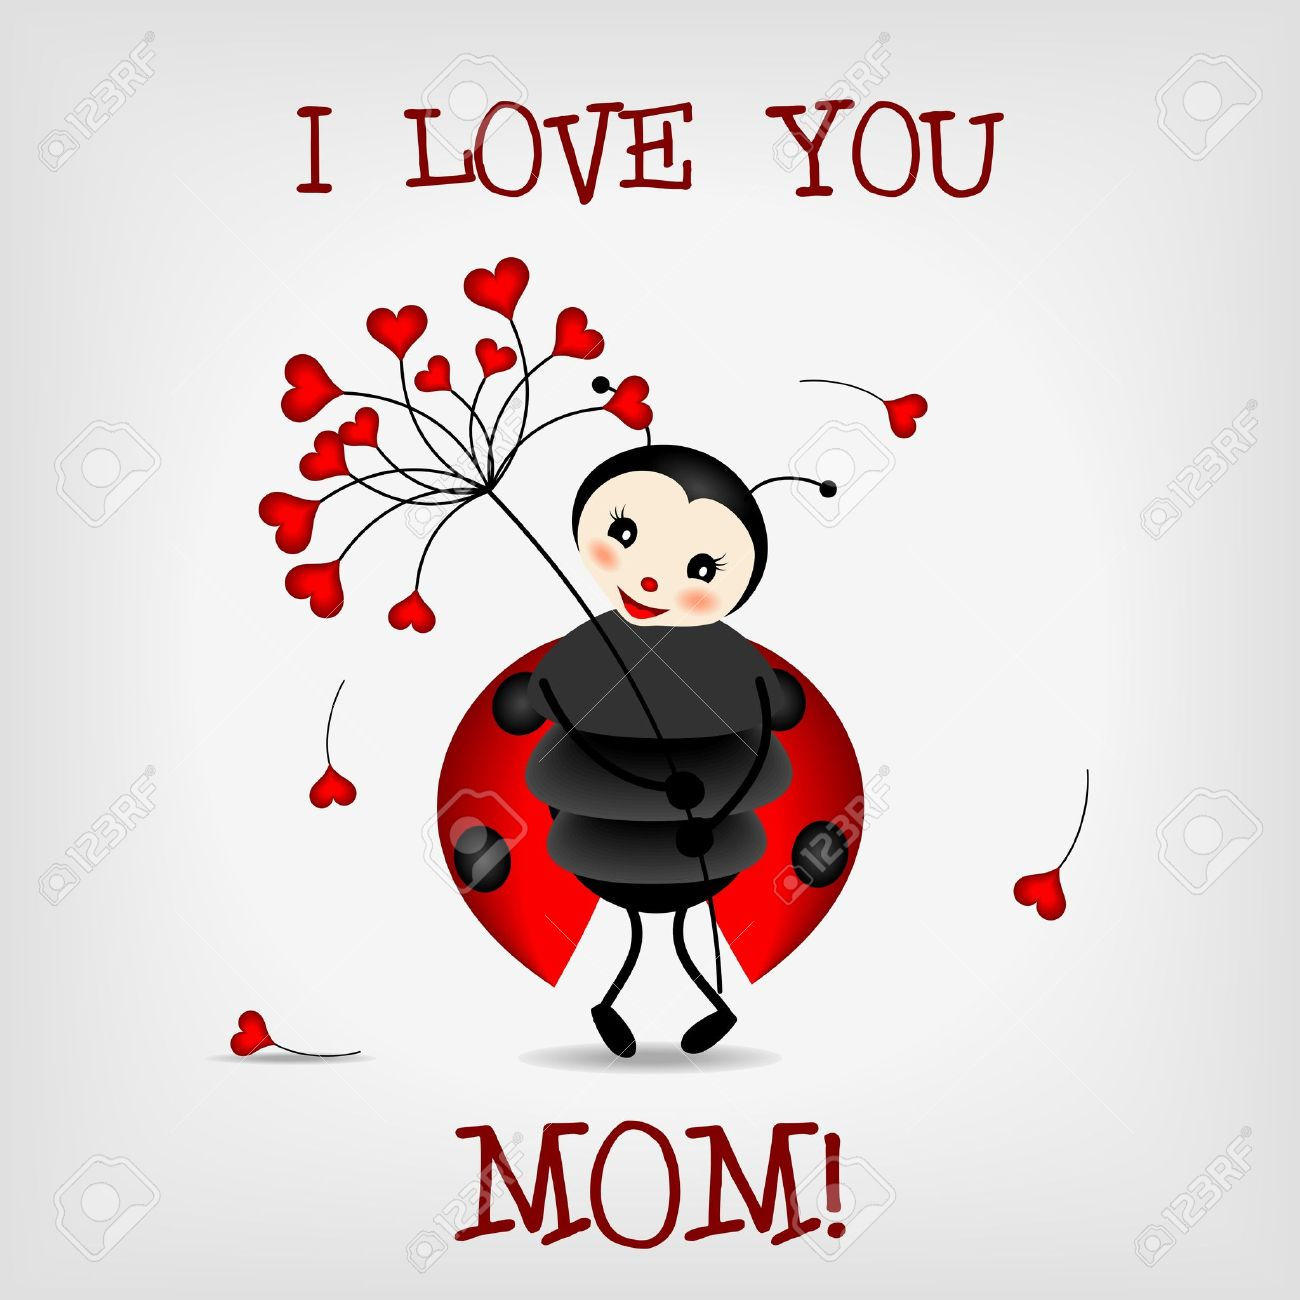 Cute Ladybug Holding Red Flower With Text I LOVE YOU MOM Stock Vector